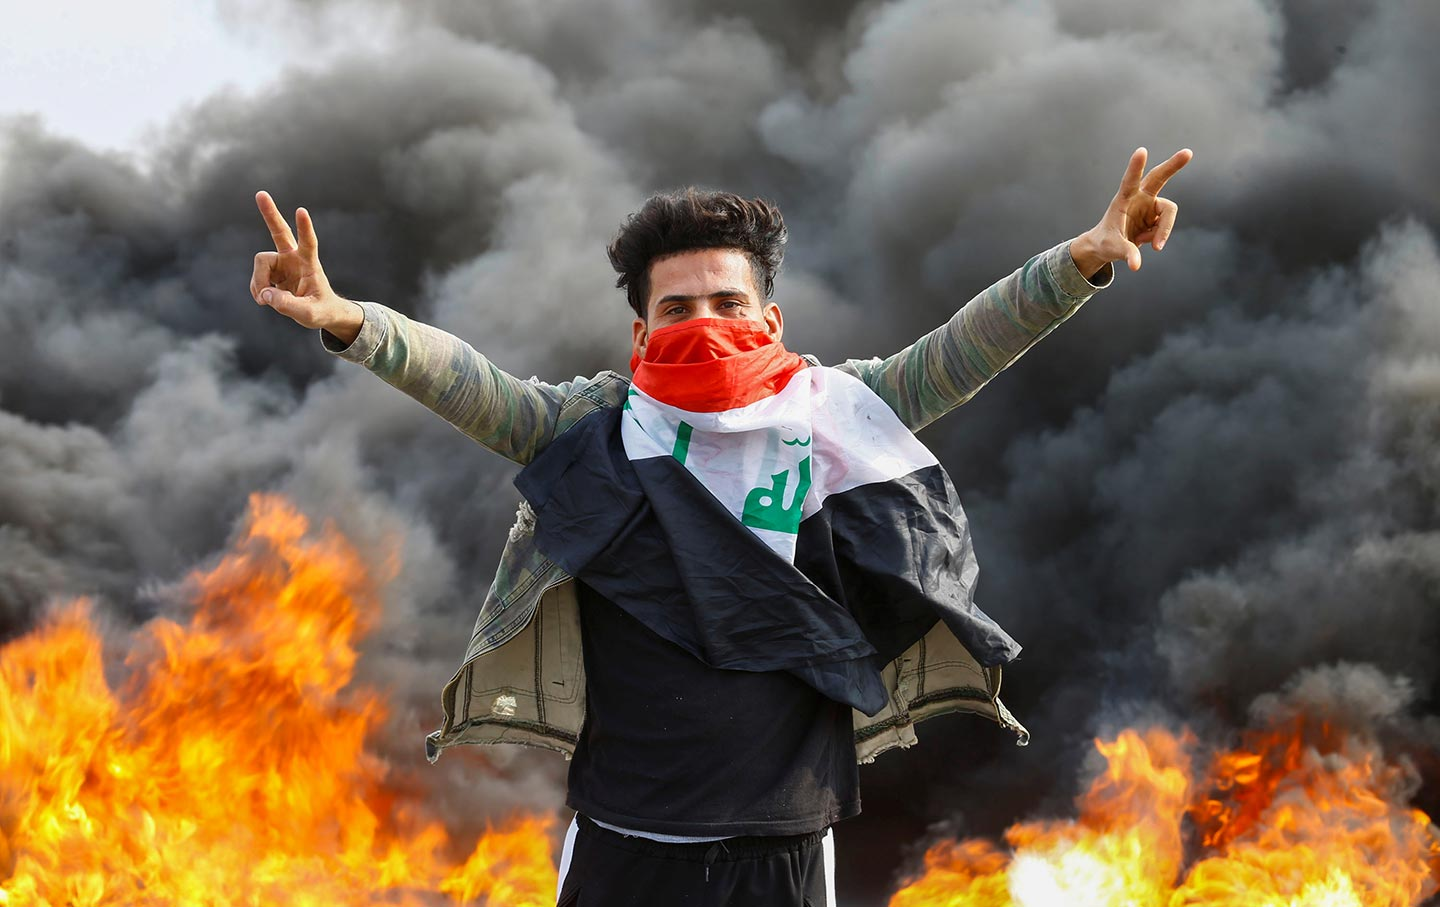 iraqi-protester-2019-rtr-img